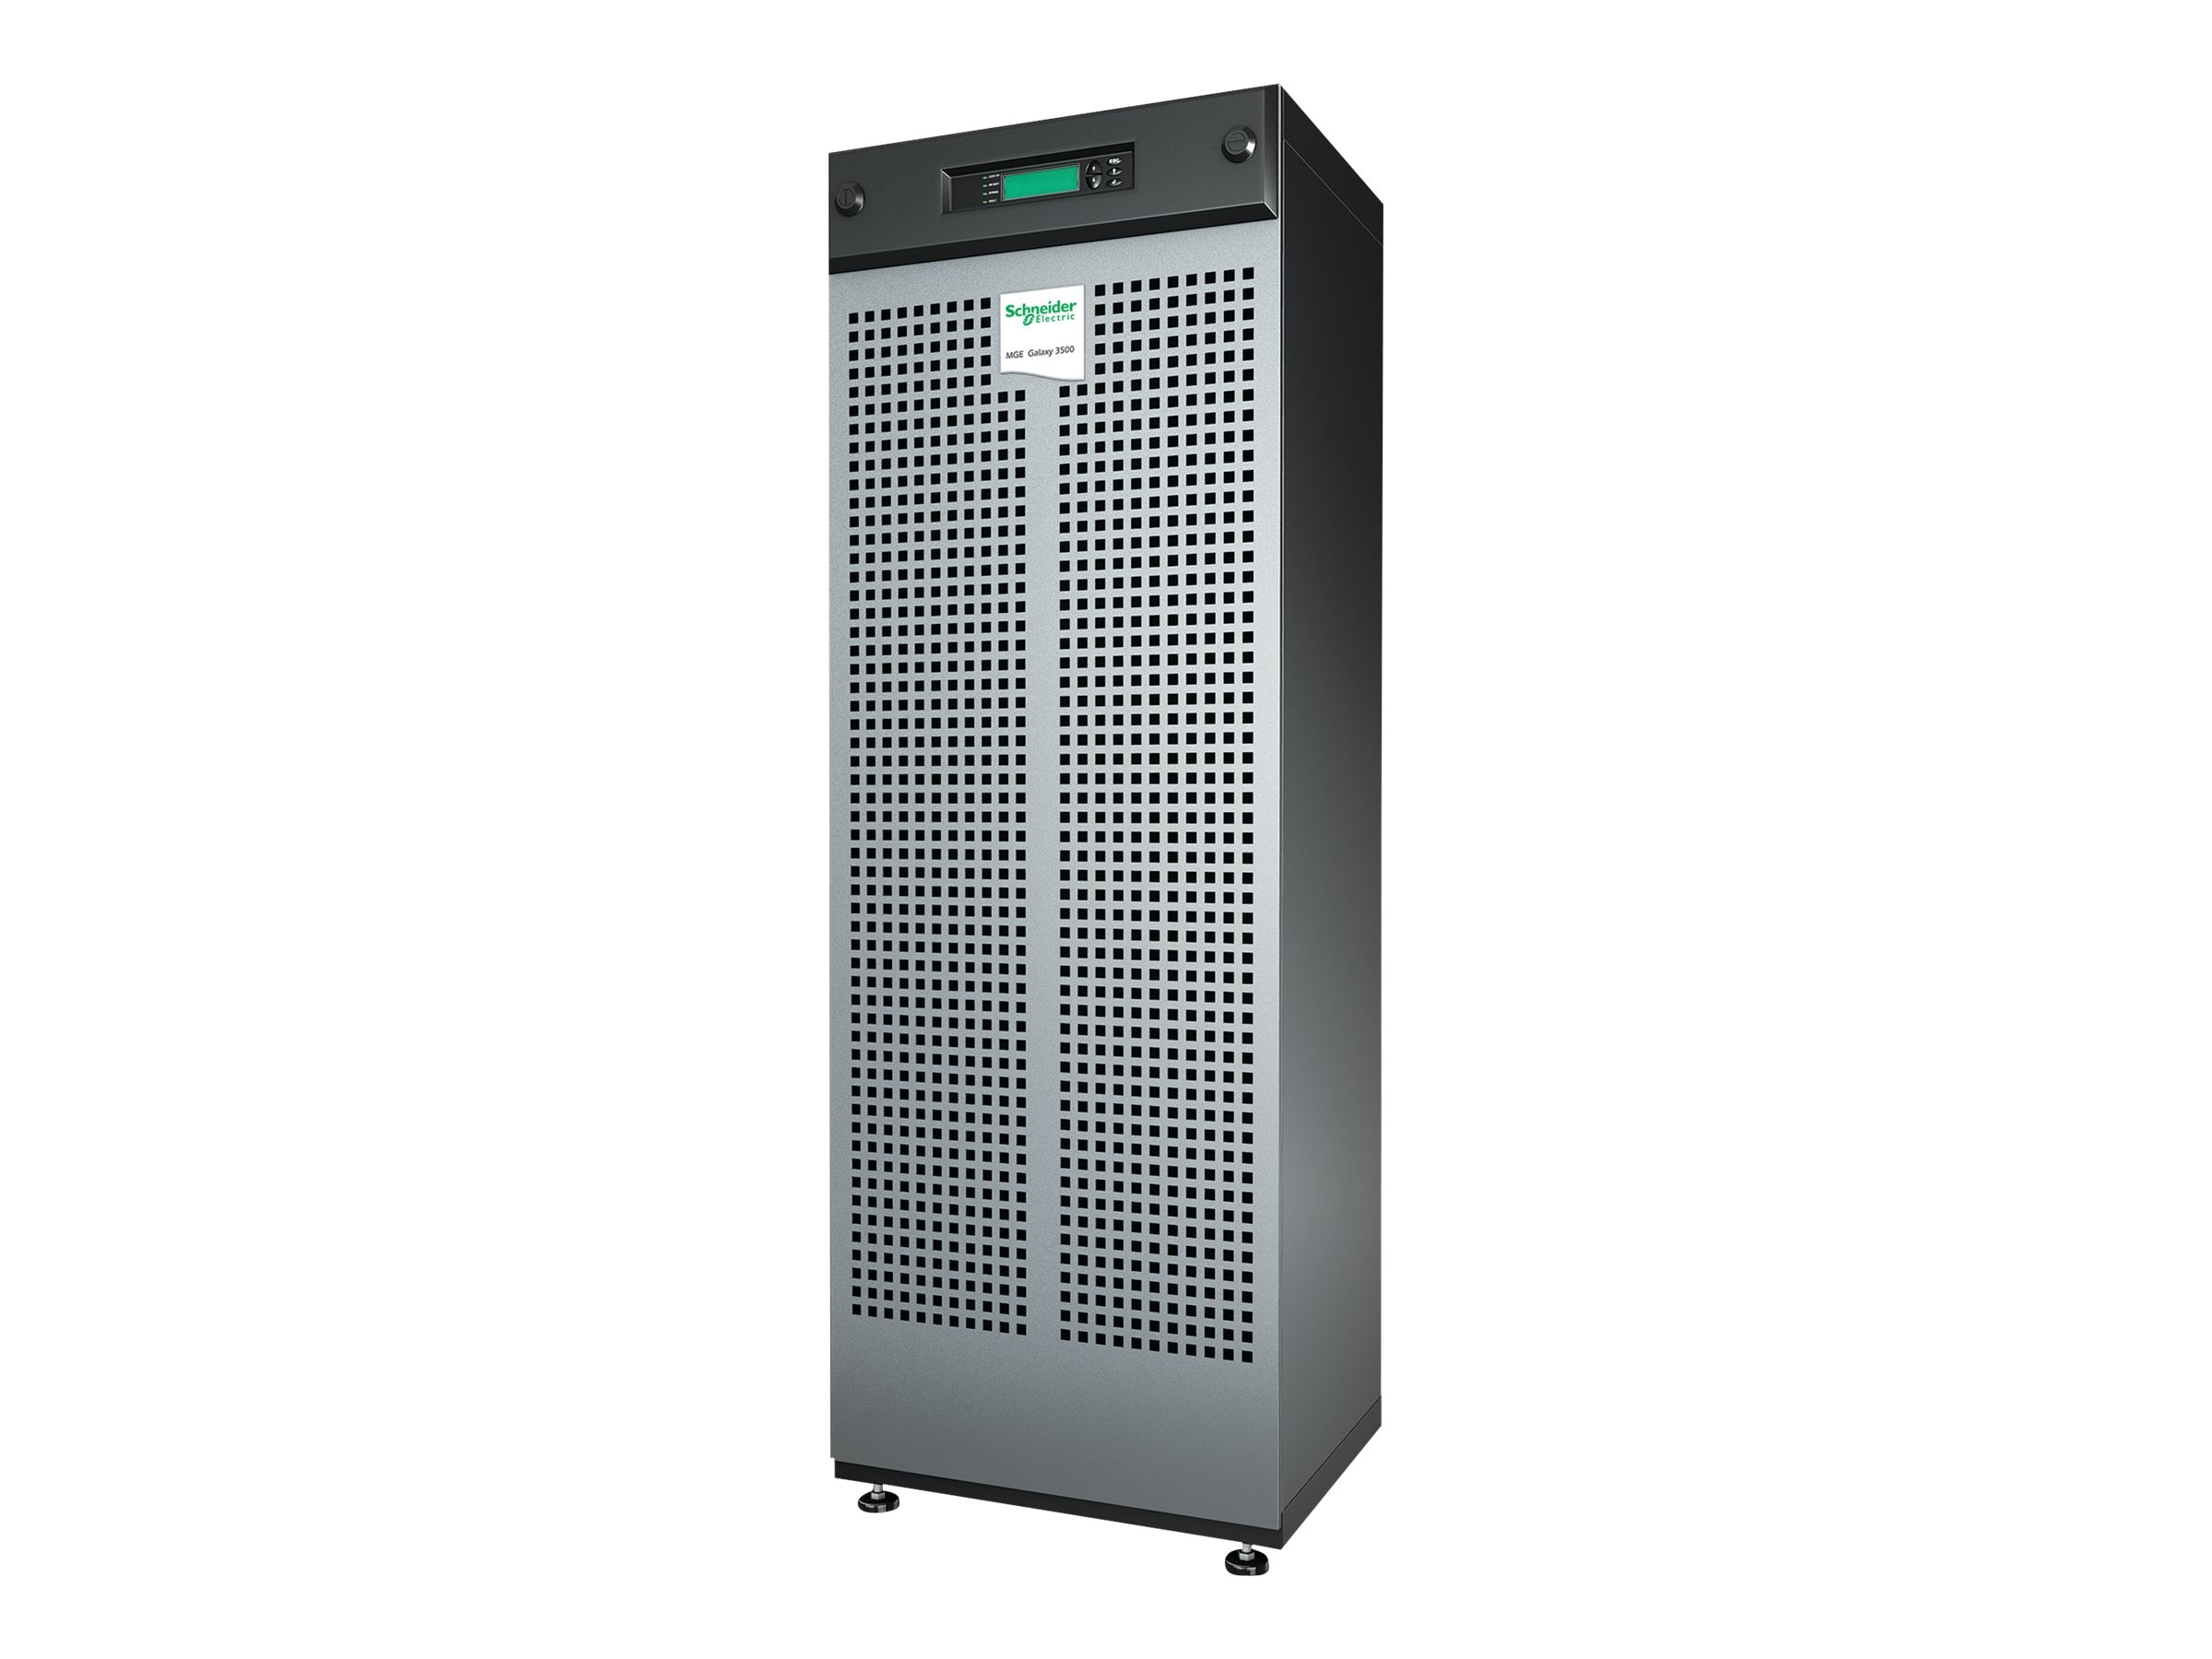 APC MGE Galaxy 3500 10kVA 8kW 208V with (3) Battery Modules Expandable to (4), Start-up 5x8